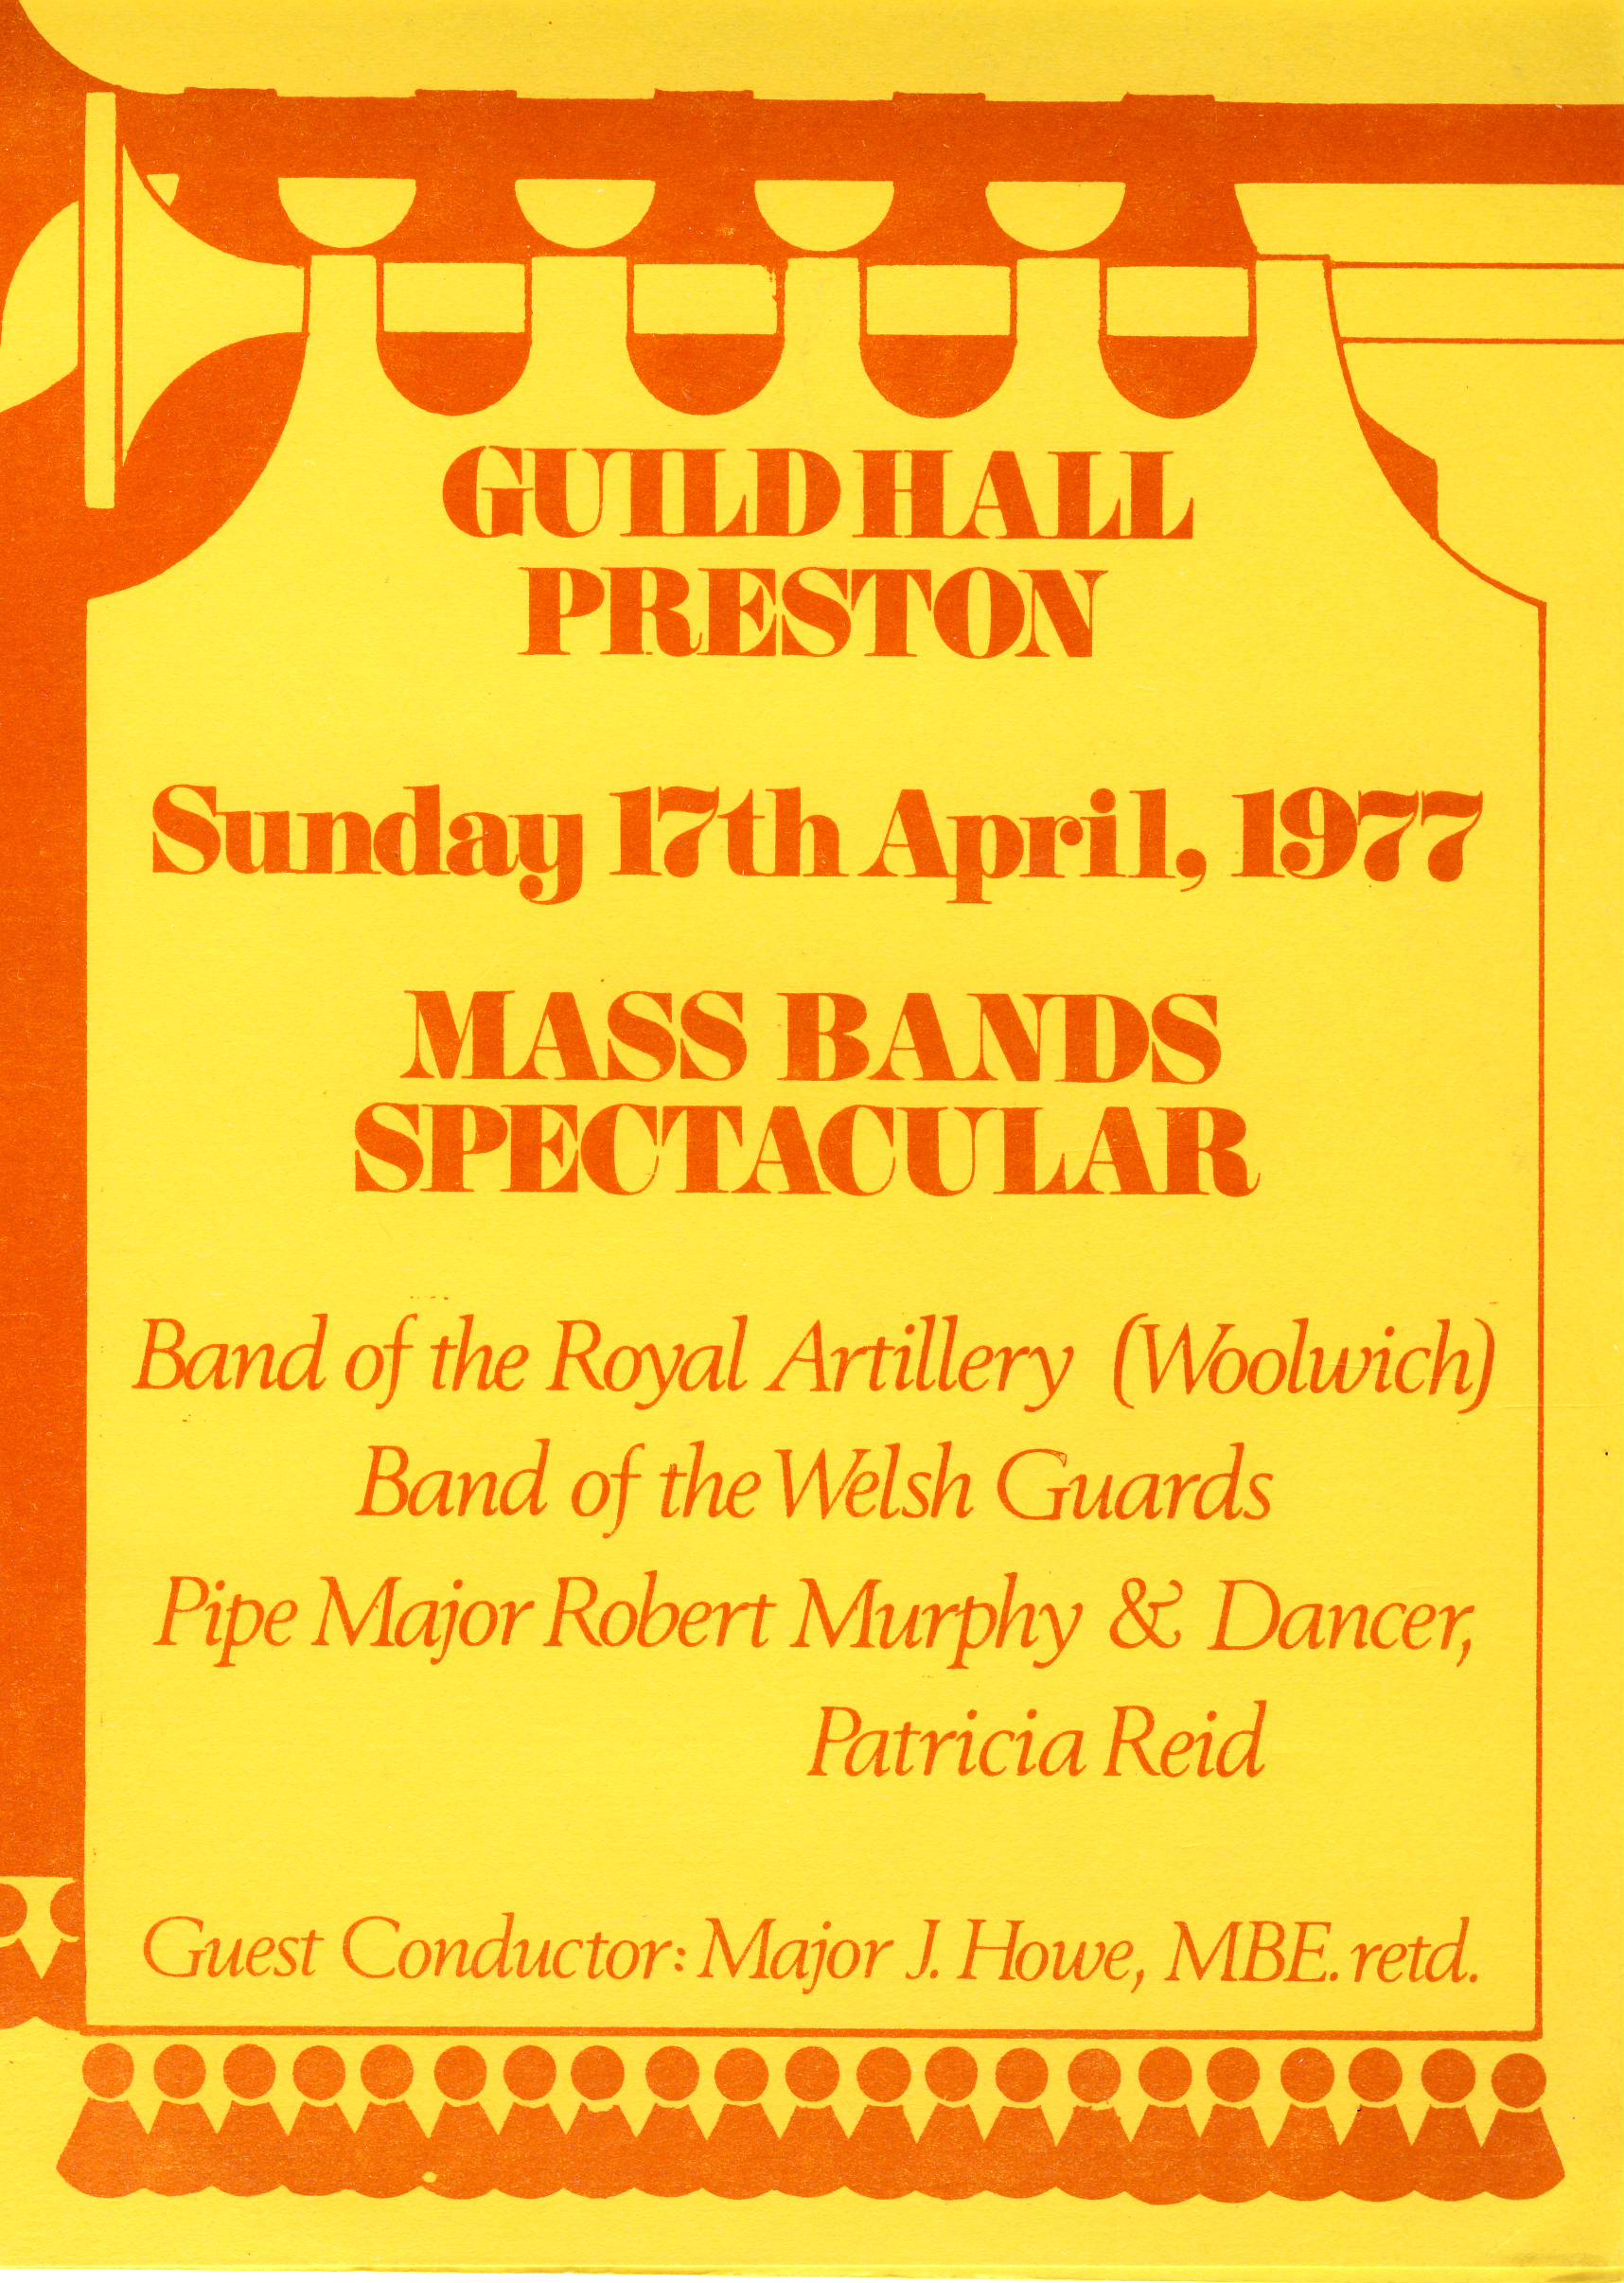 1977 Guildhall Preston Mass Bands Spectacular folded brochure refS5 Folded card dated Sunday 17th April 1977 - a pre-owned vintage item in good condition.